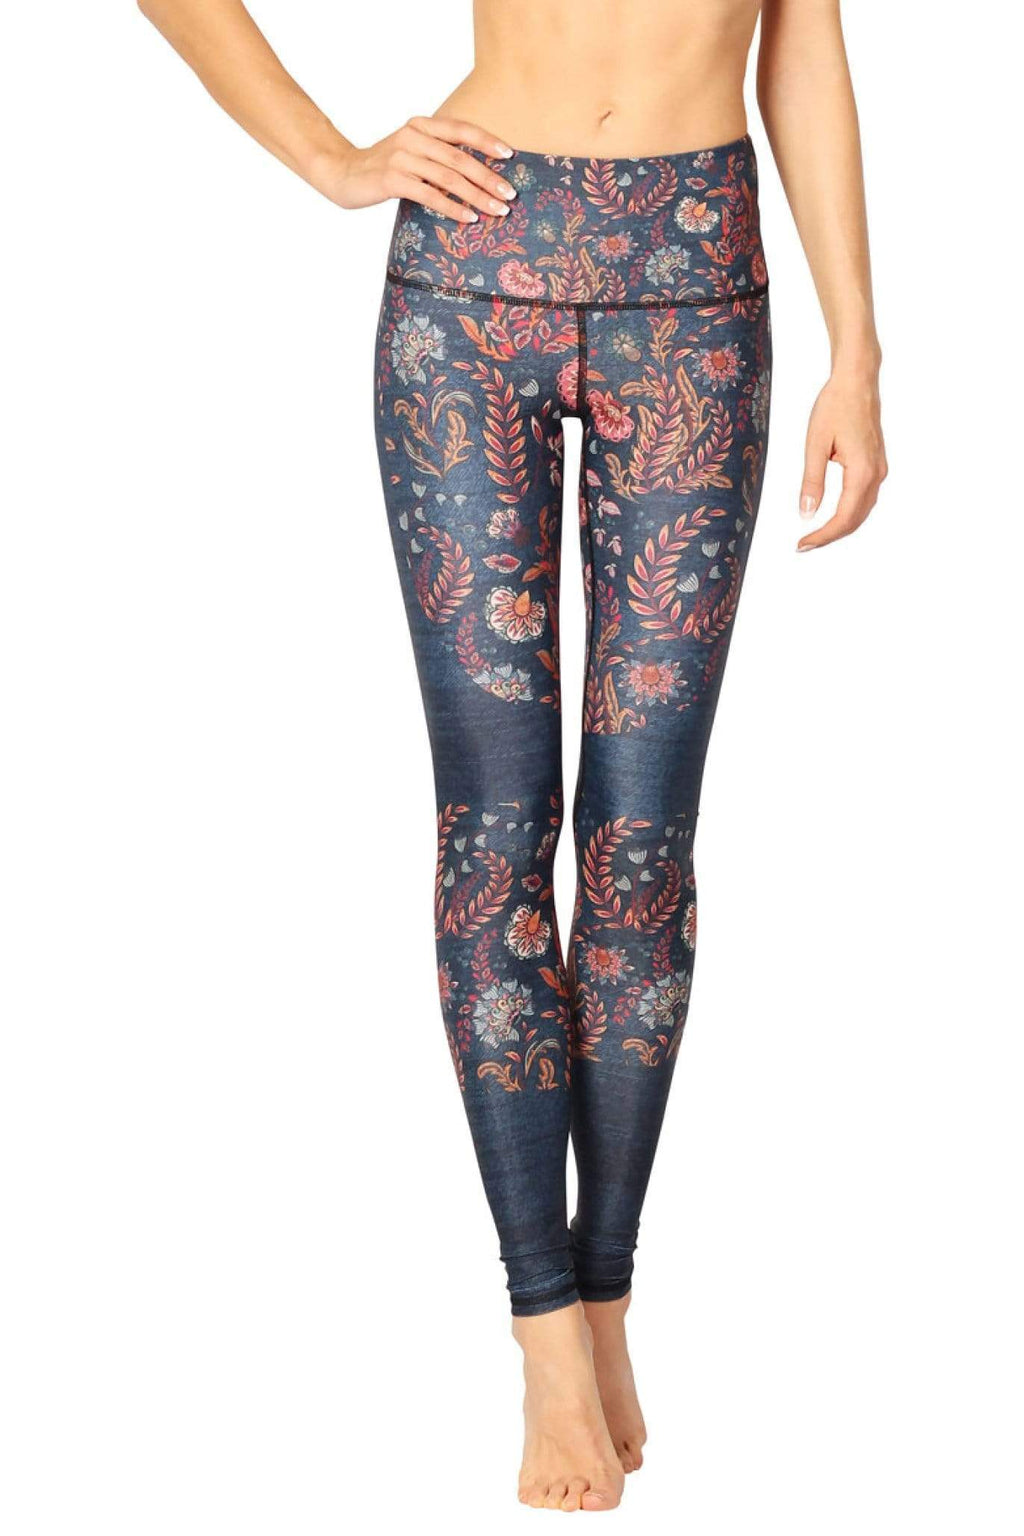 Yoga Democracy Leggings Festival Denim Printed Yoga Leggings